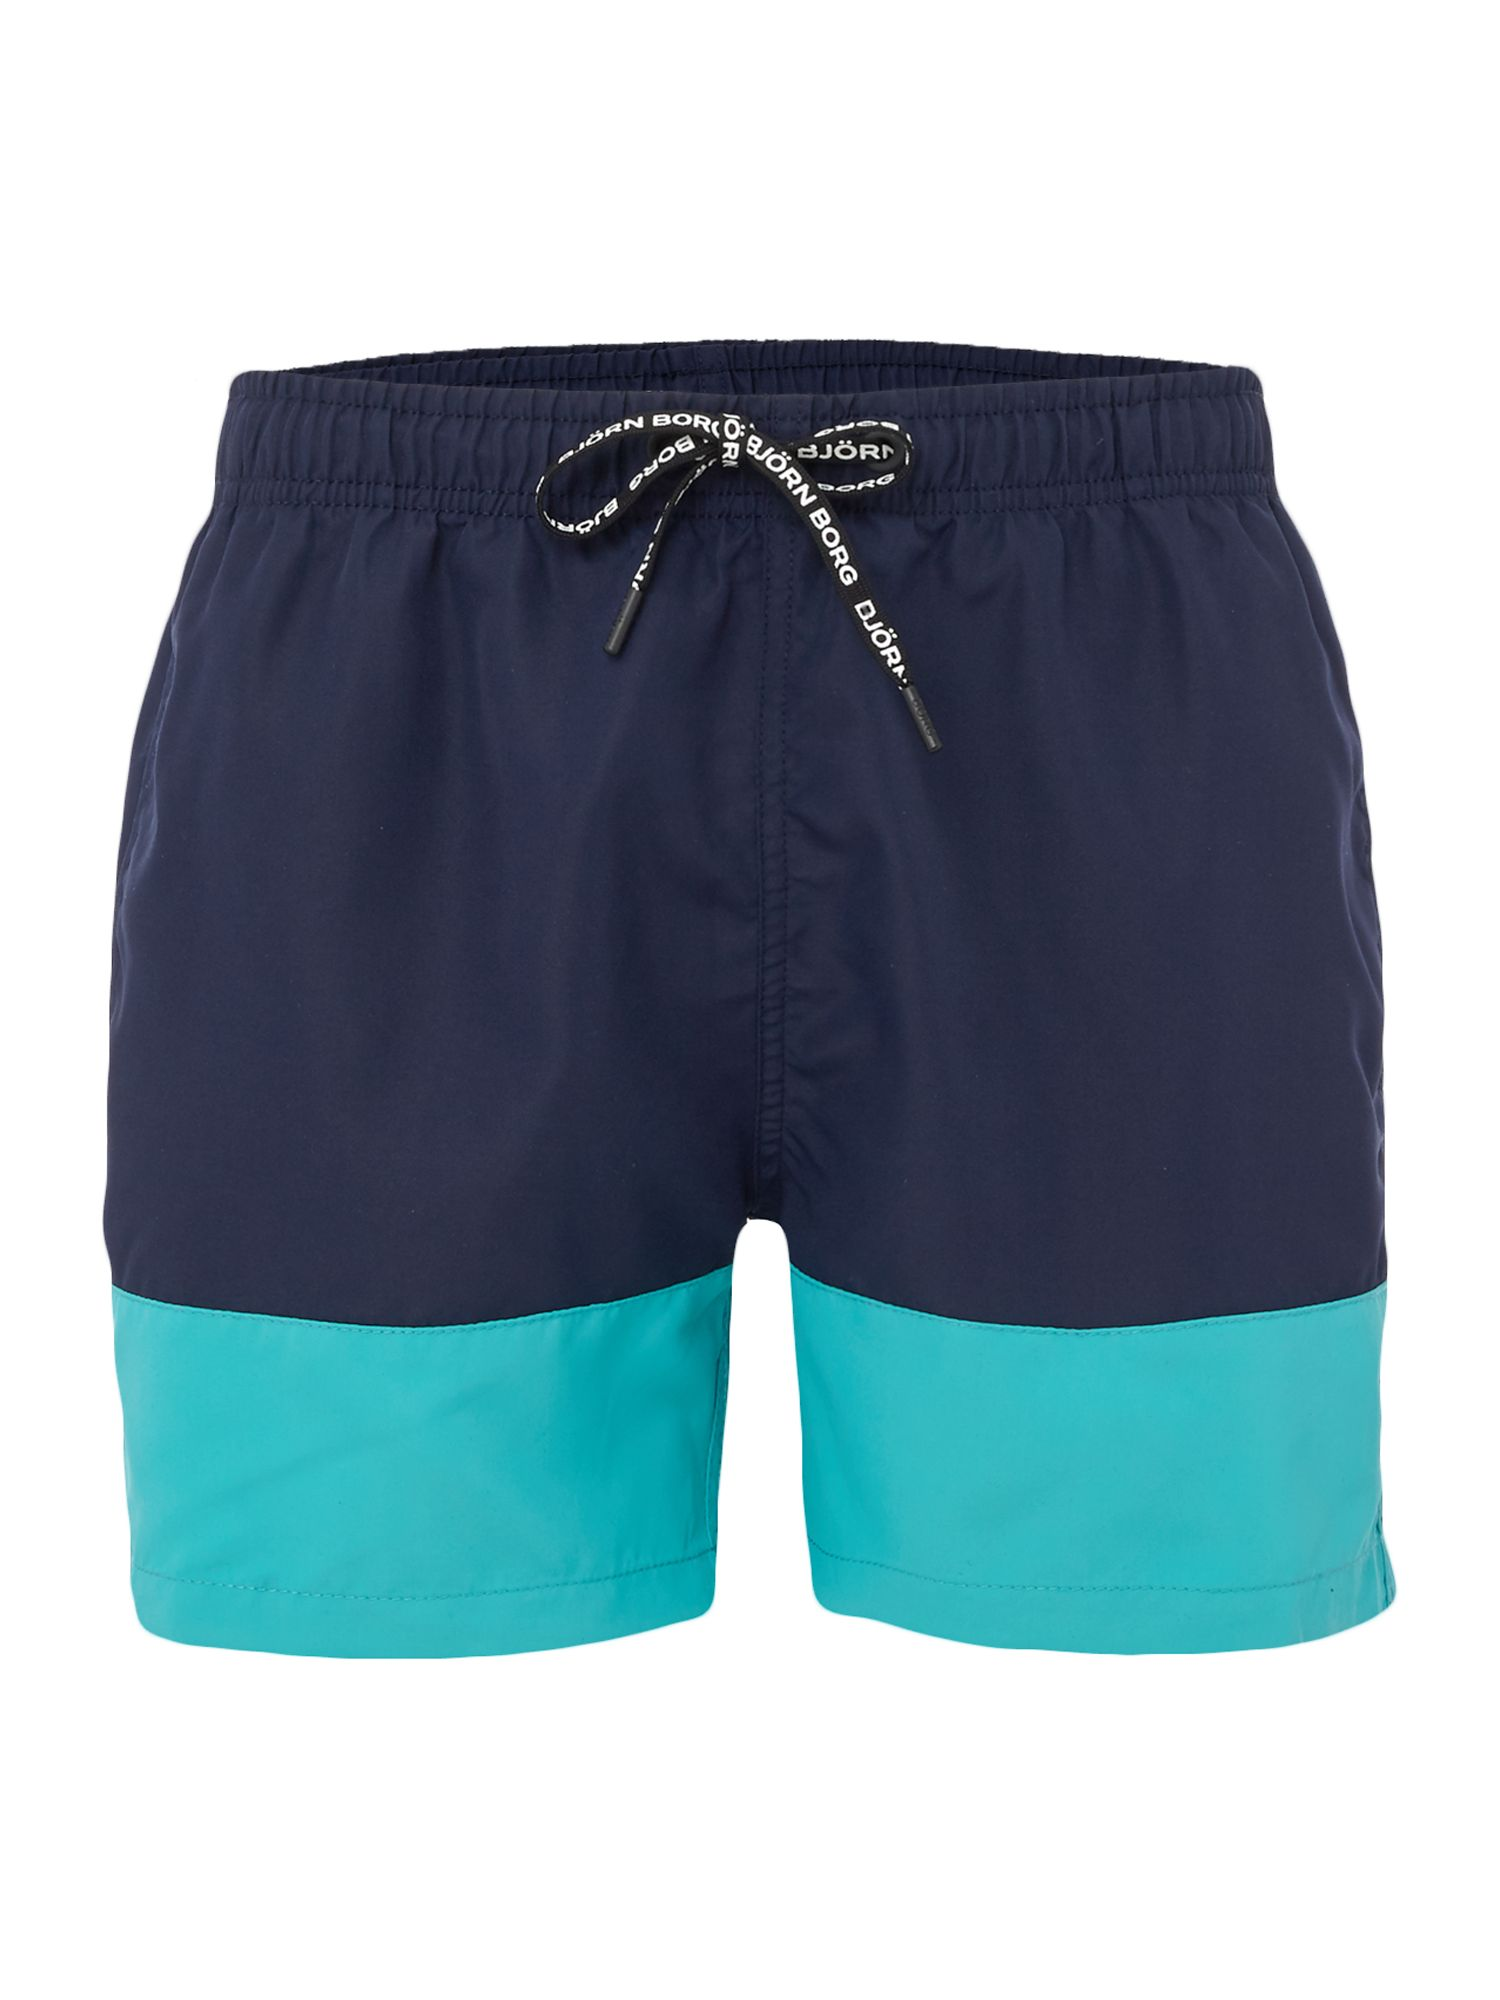 Men's Bjorn Borg Colour Block Swim shorts, Blue